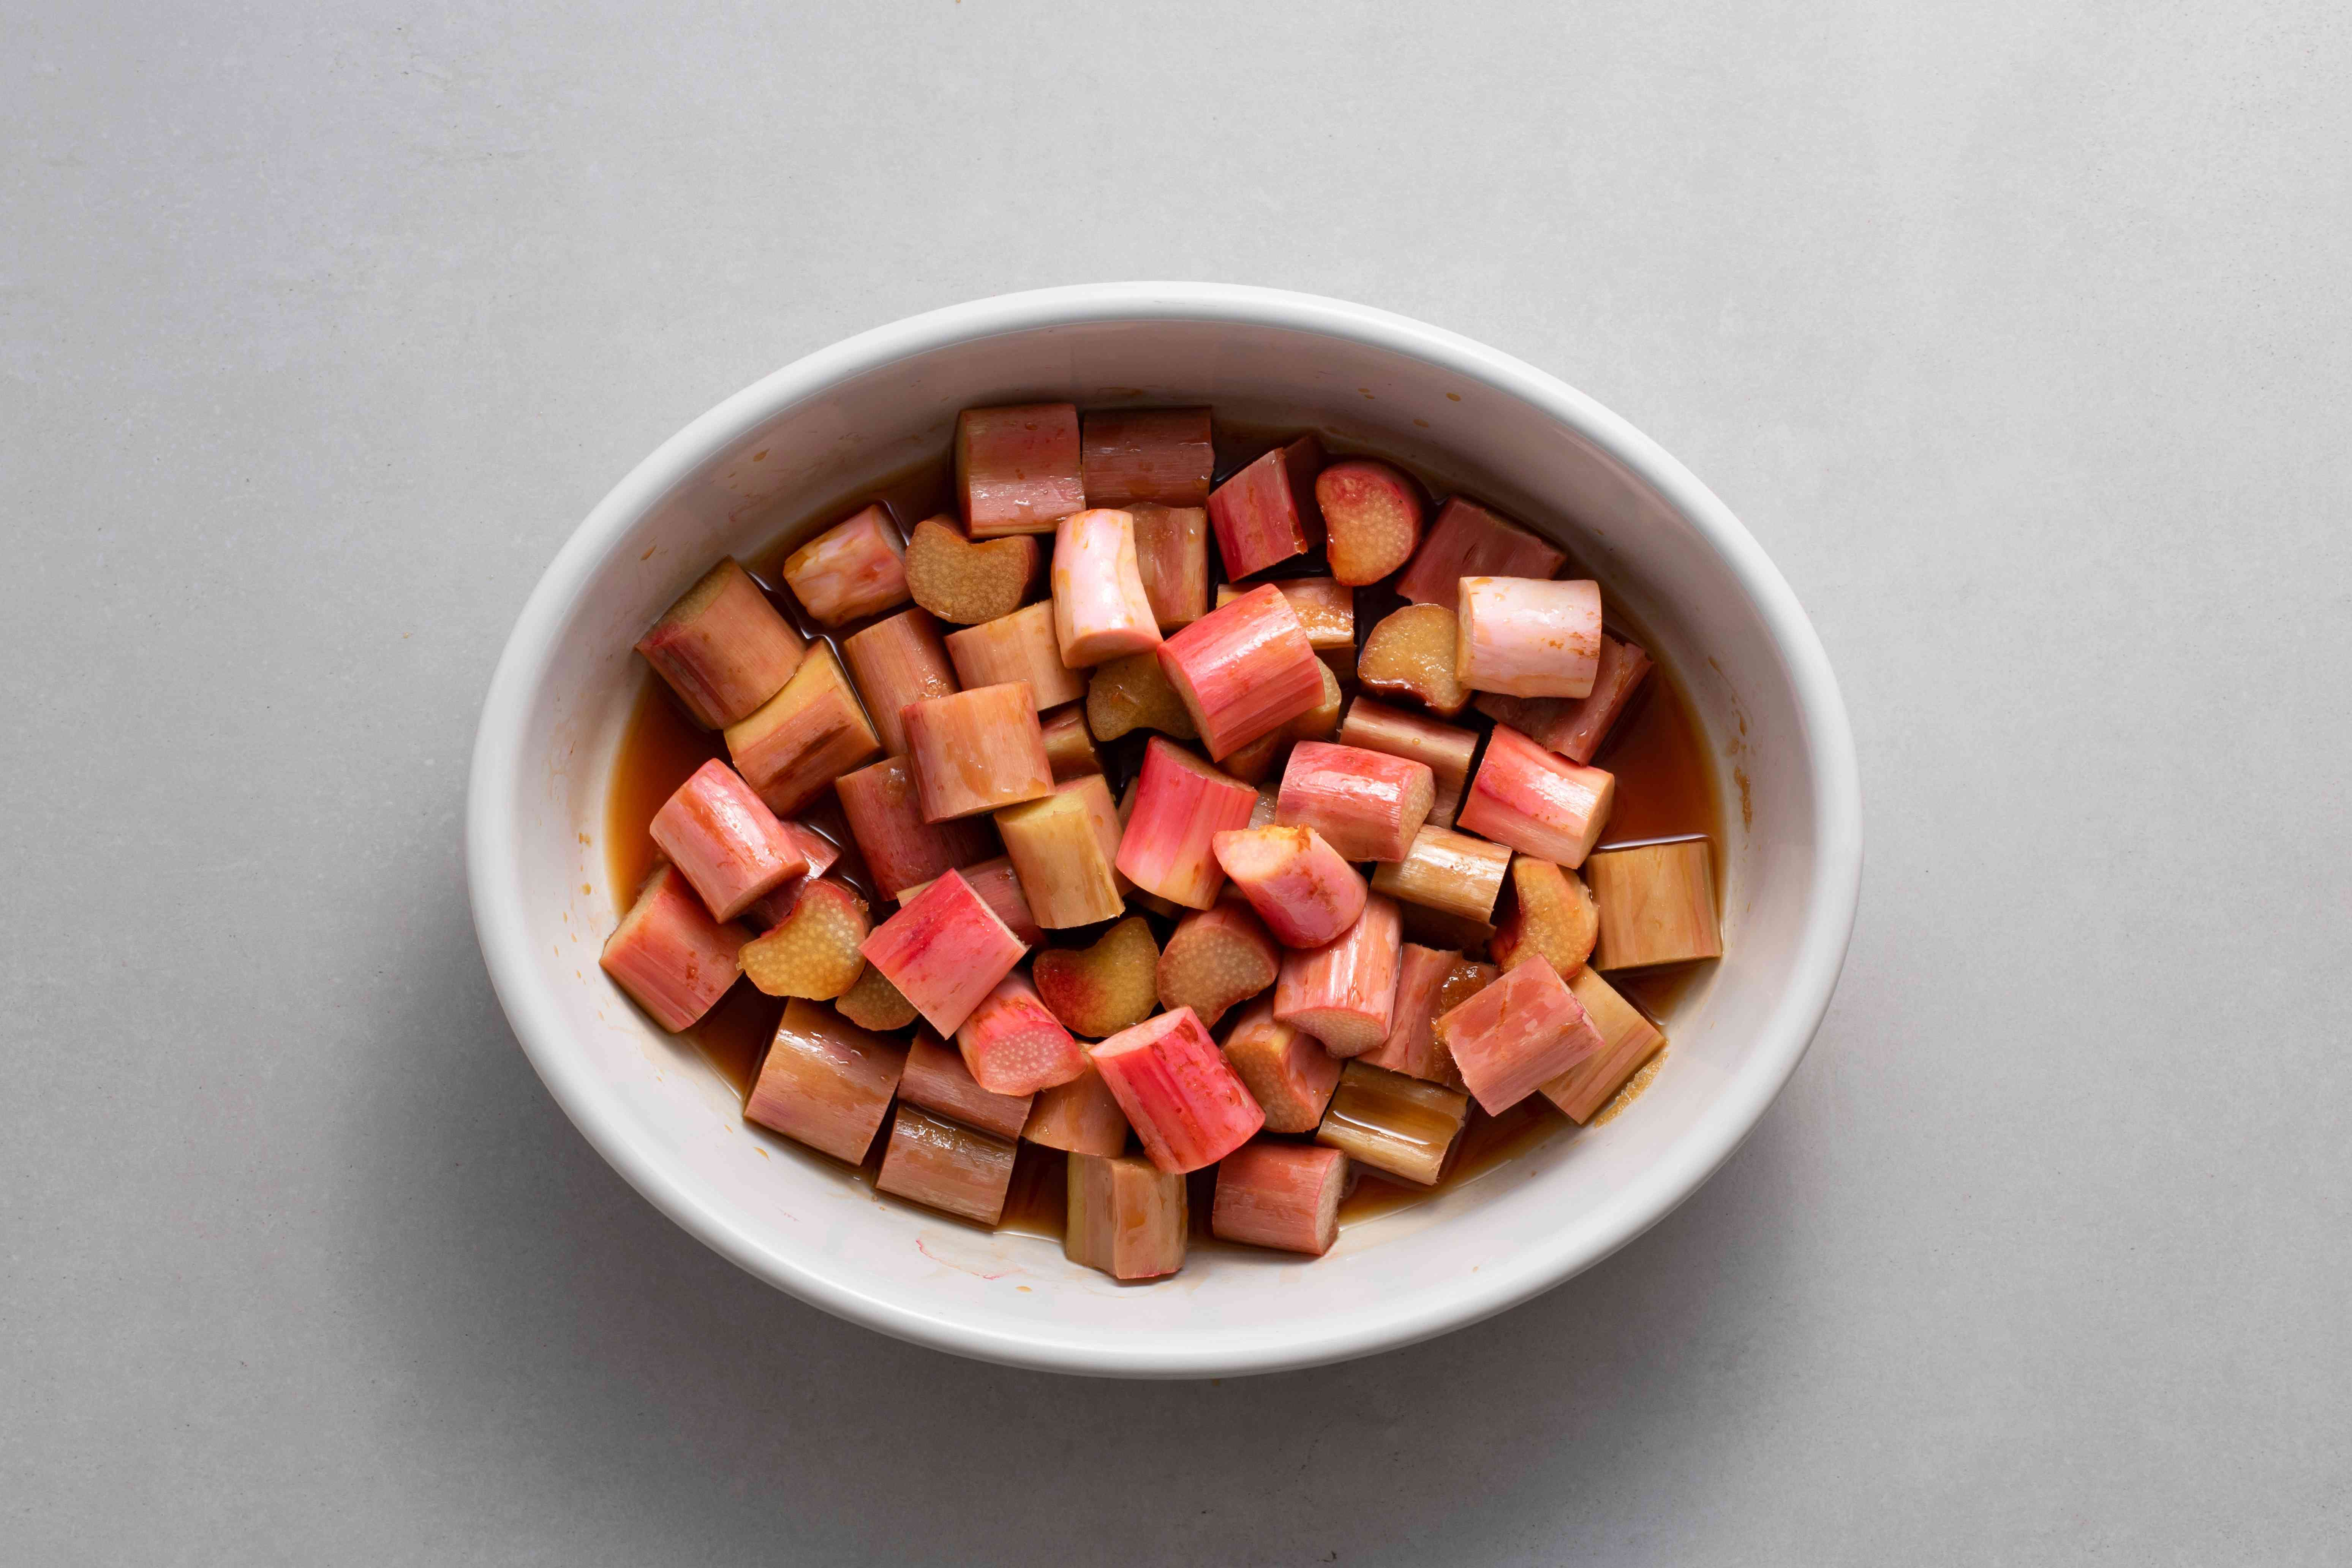 Rhubarb cooling in a baking dish